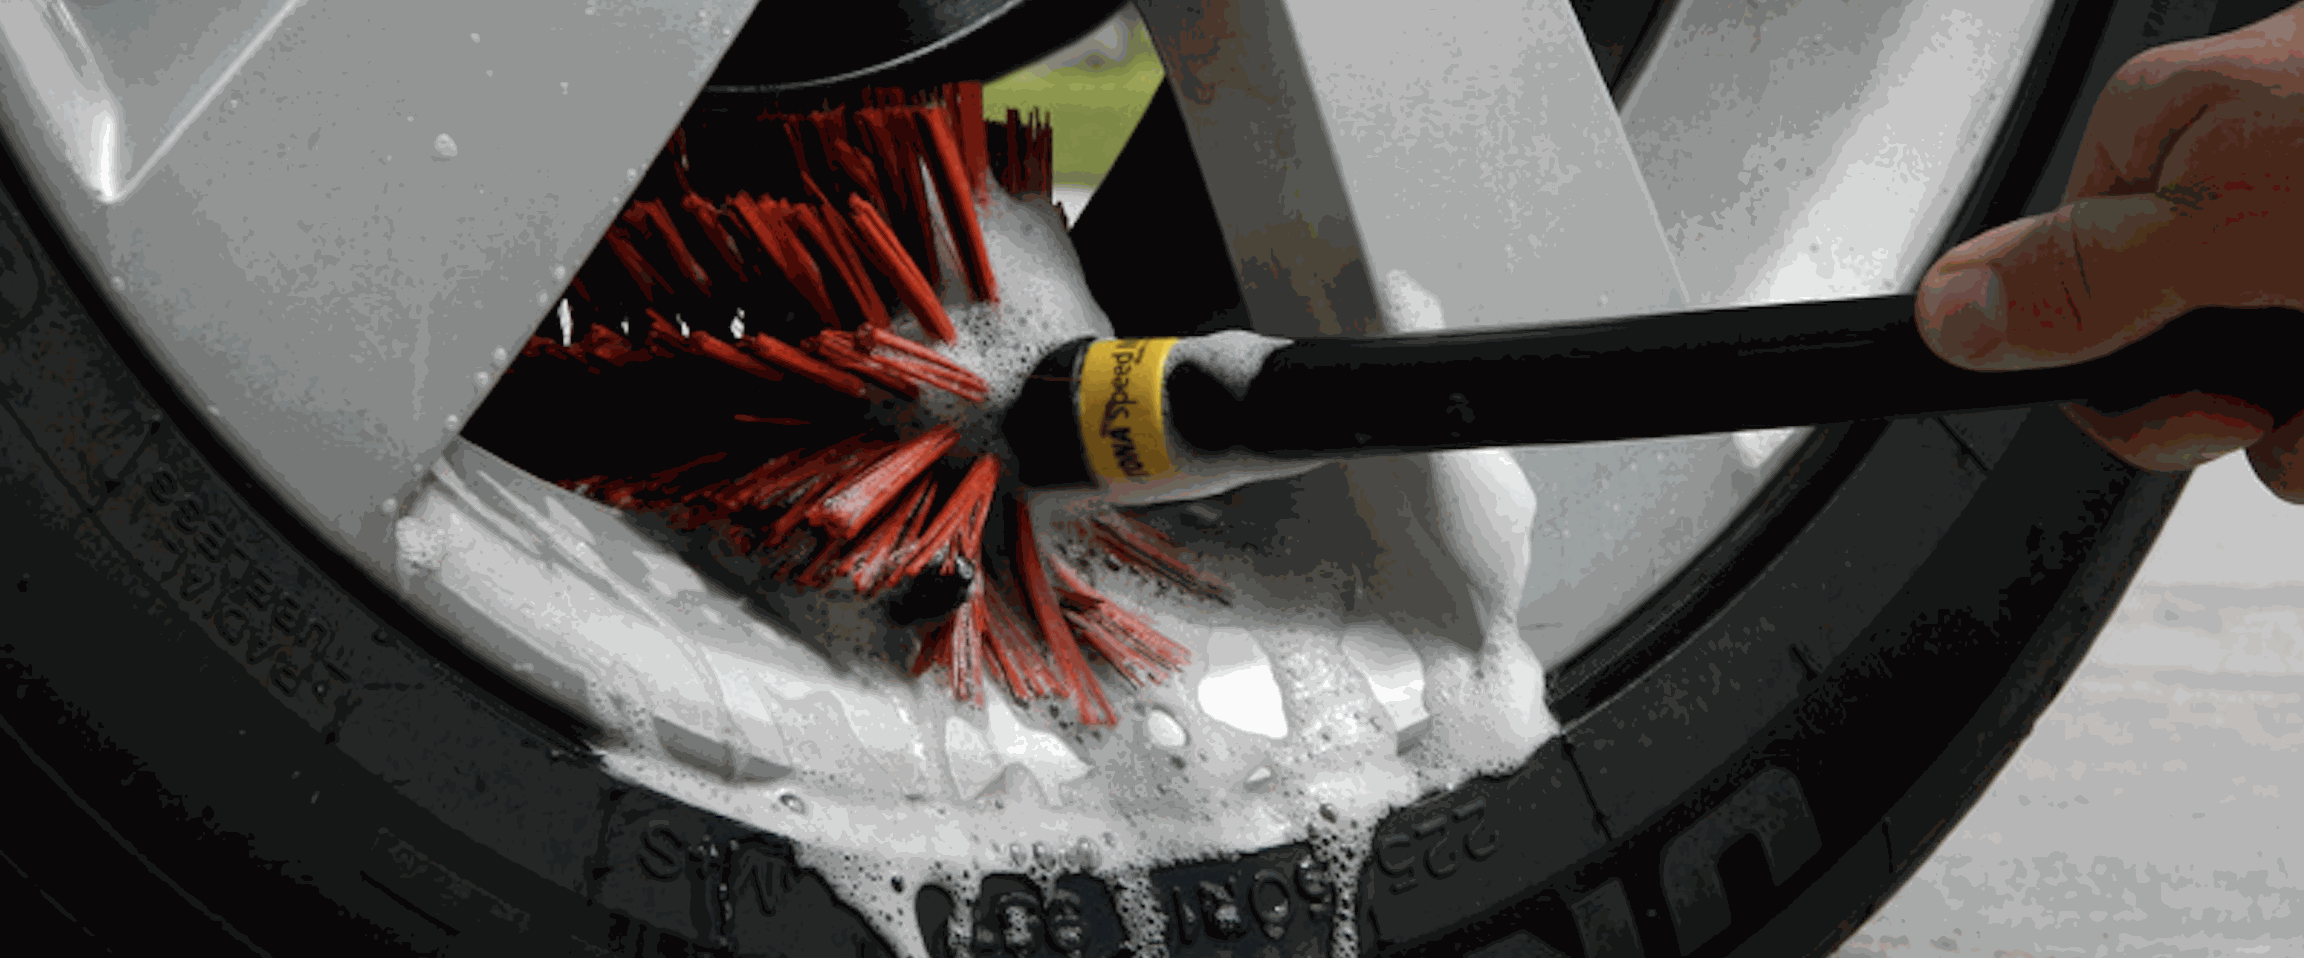 First Aid Wheels' Guide to Simple Alloy Wheel Cleaning Hacks | First Aid Wheels